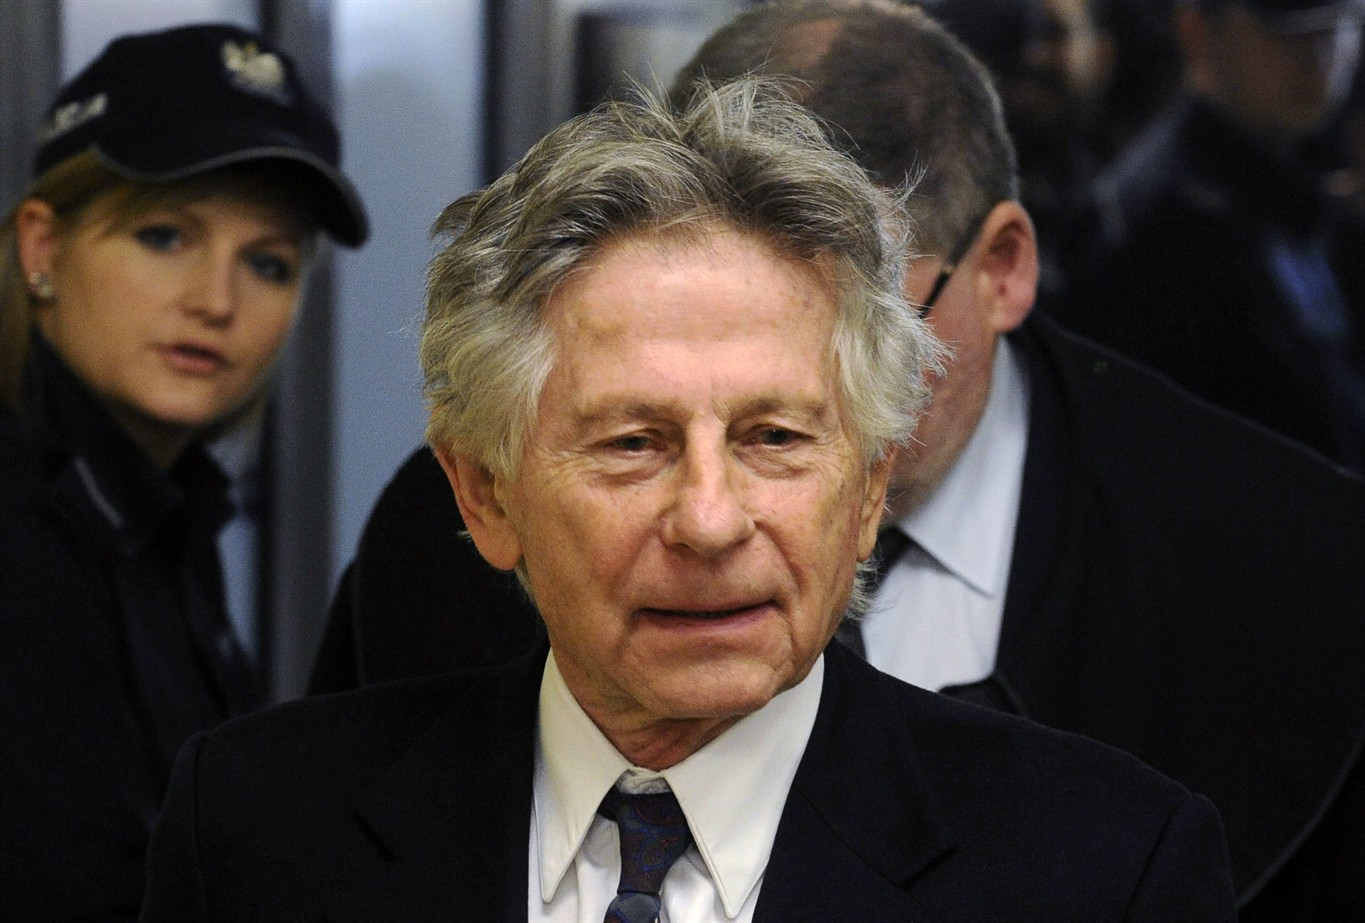 Roman Polanski's no jail return offer rejected